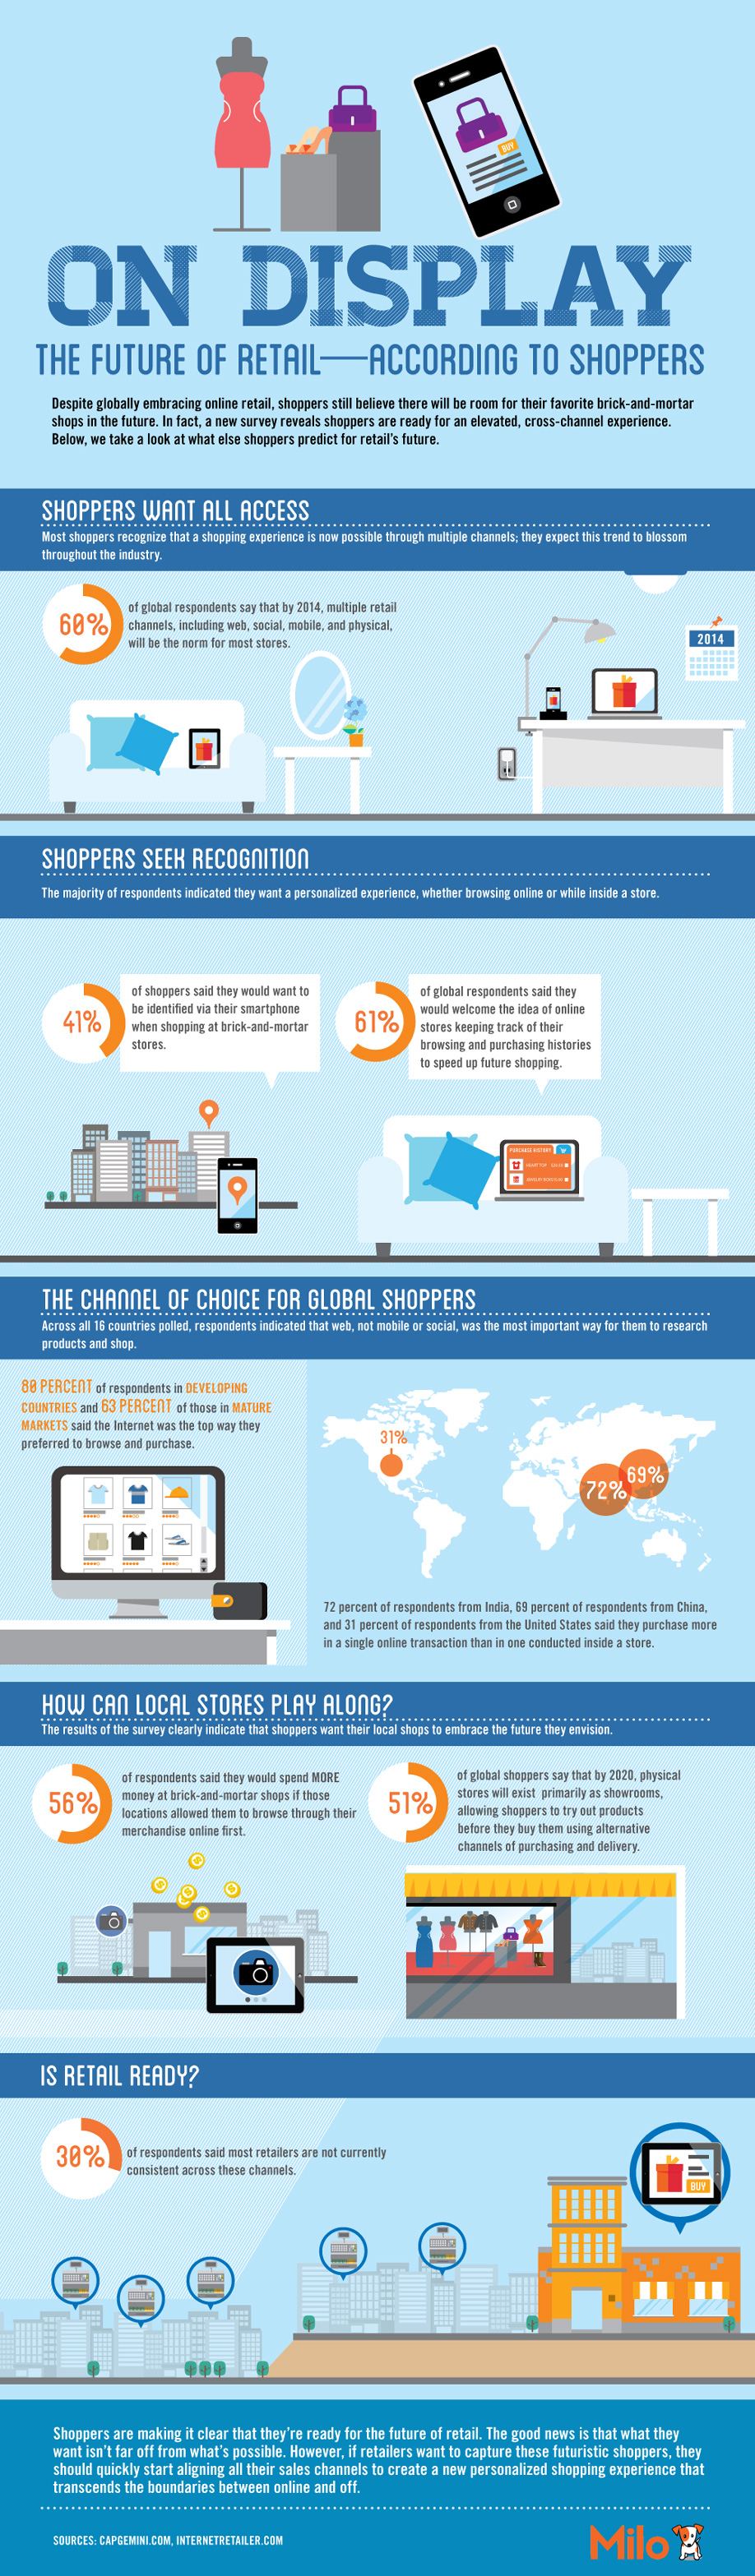 Infographic: On Display: The Future of Retail